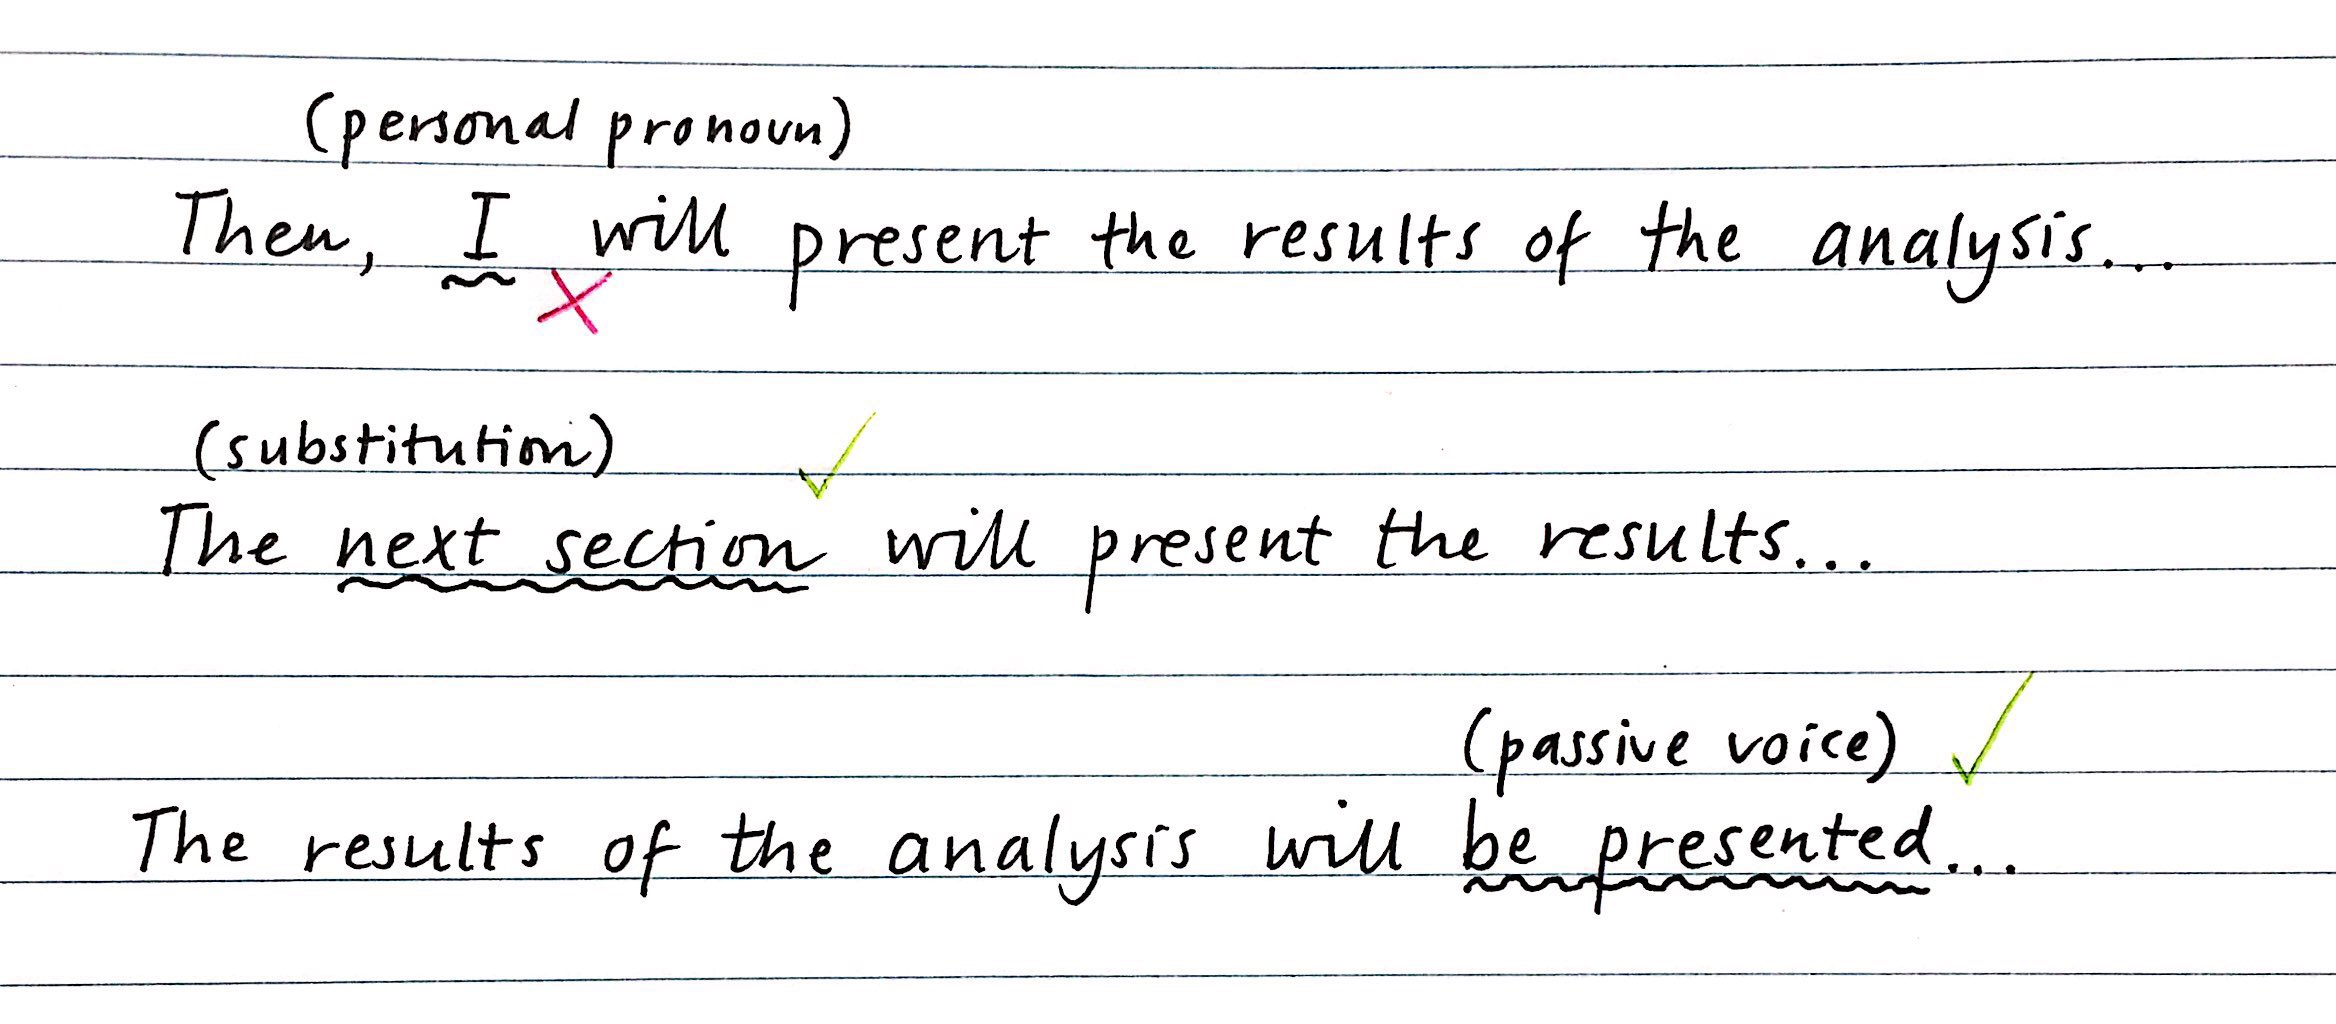 The, I (personal pronoun) will present the results of the analysis (wrong); The next section (substitution) will present the results; The results of the analysis will be presented (passive voice)